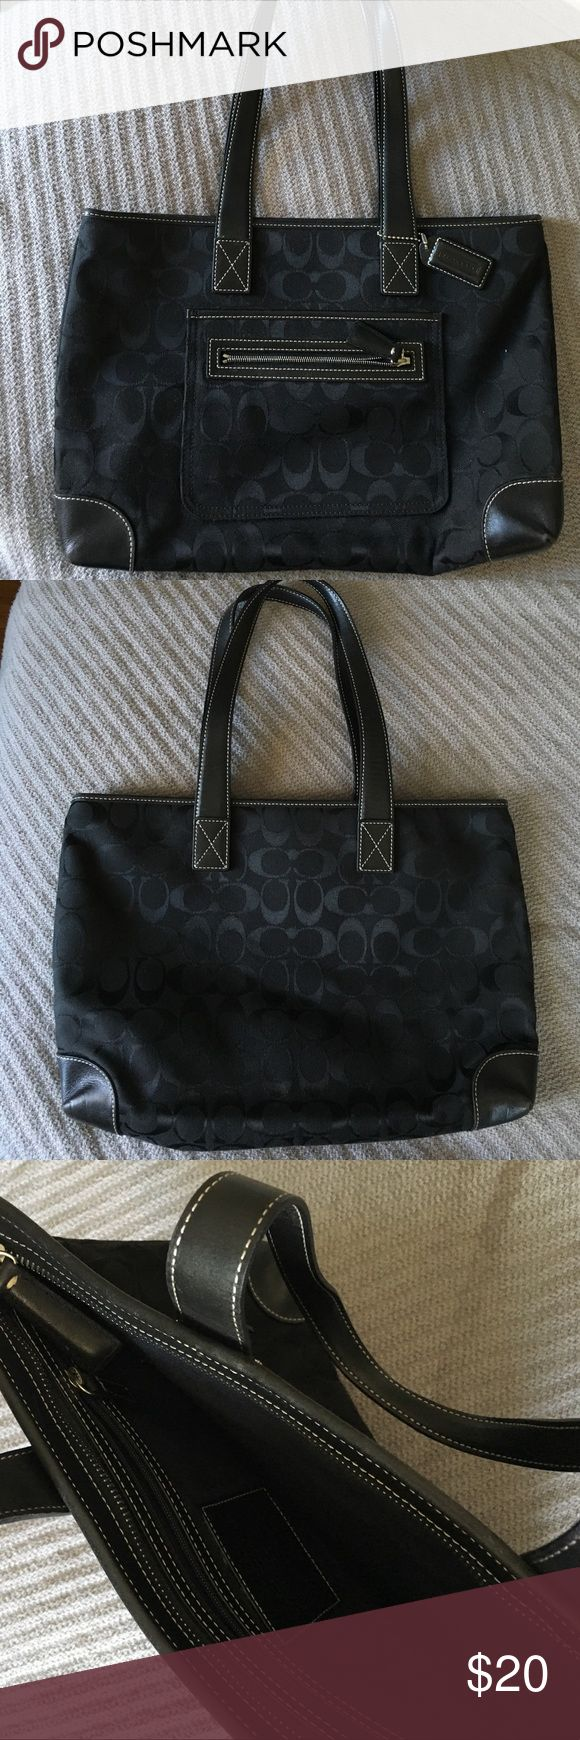 Coach pocketbook Classic black coach bag with zipper. Zippered compartment on outside and inside.  Bag is 8 inches high and 12 inches long. Very good used condition. Coach Bags Shoulder Bags